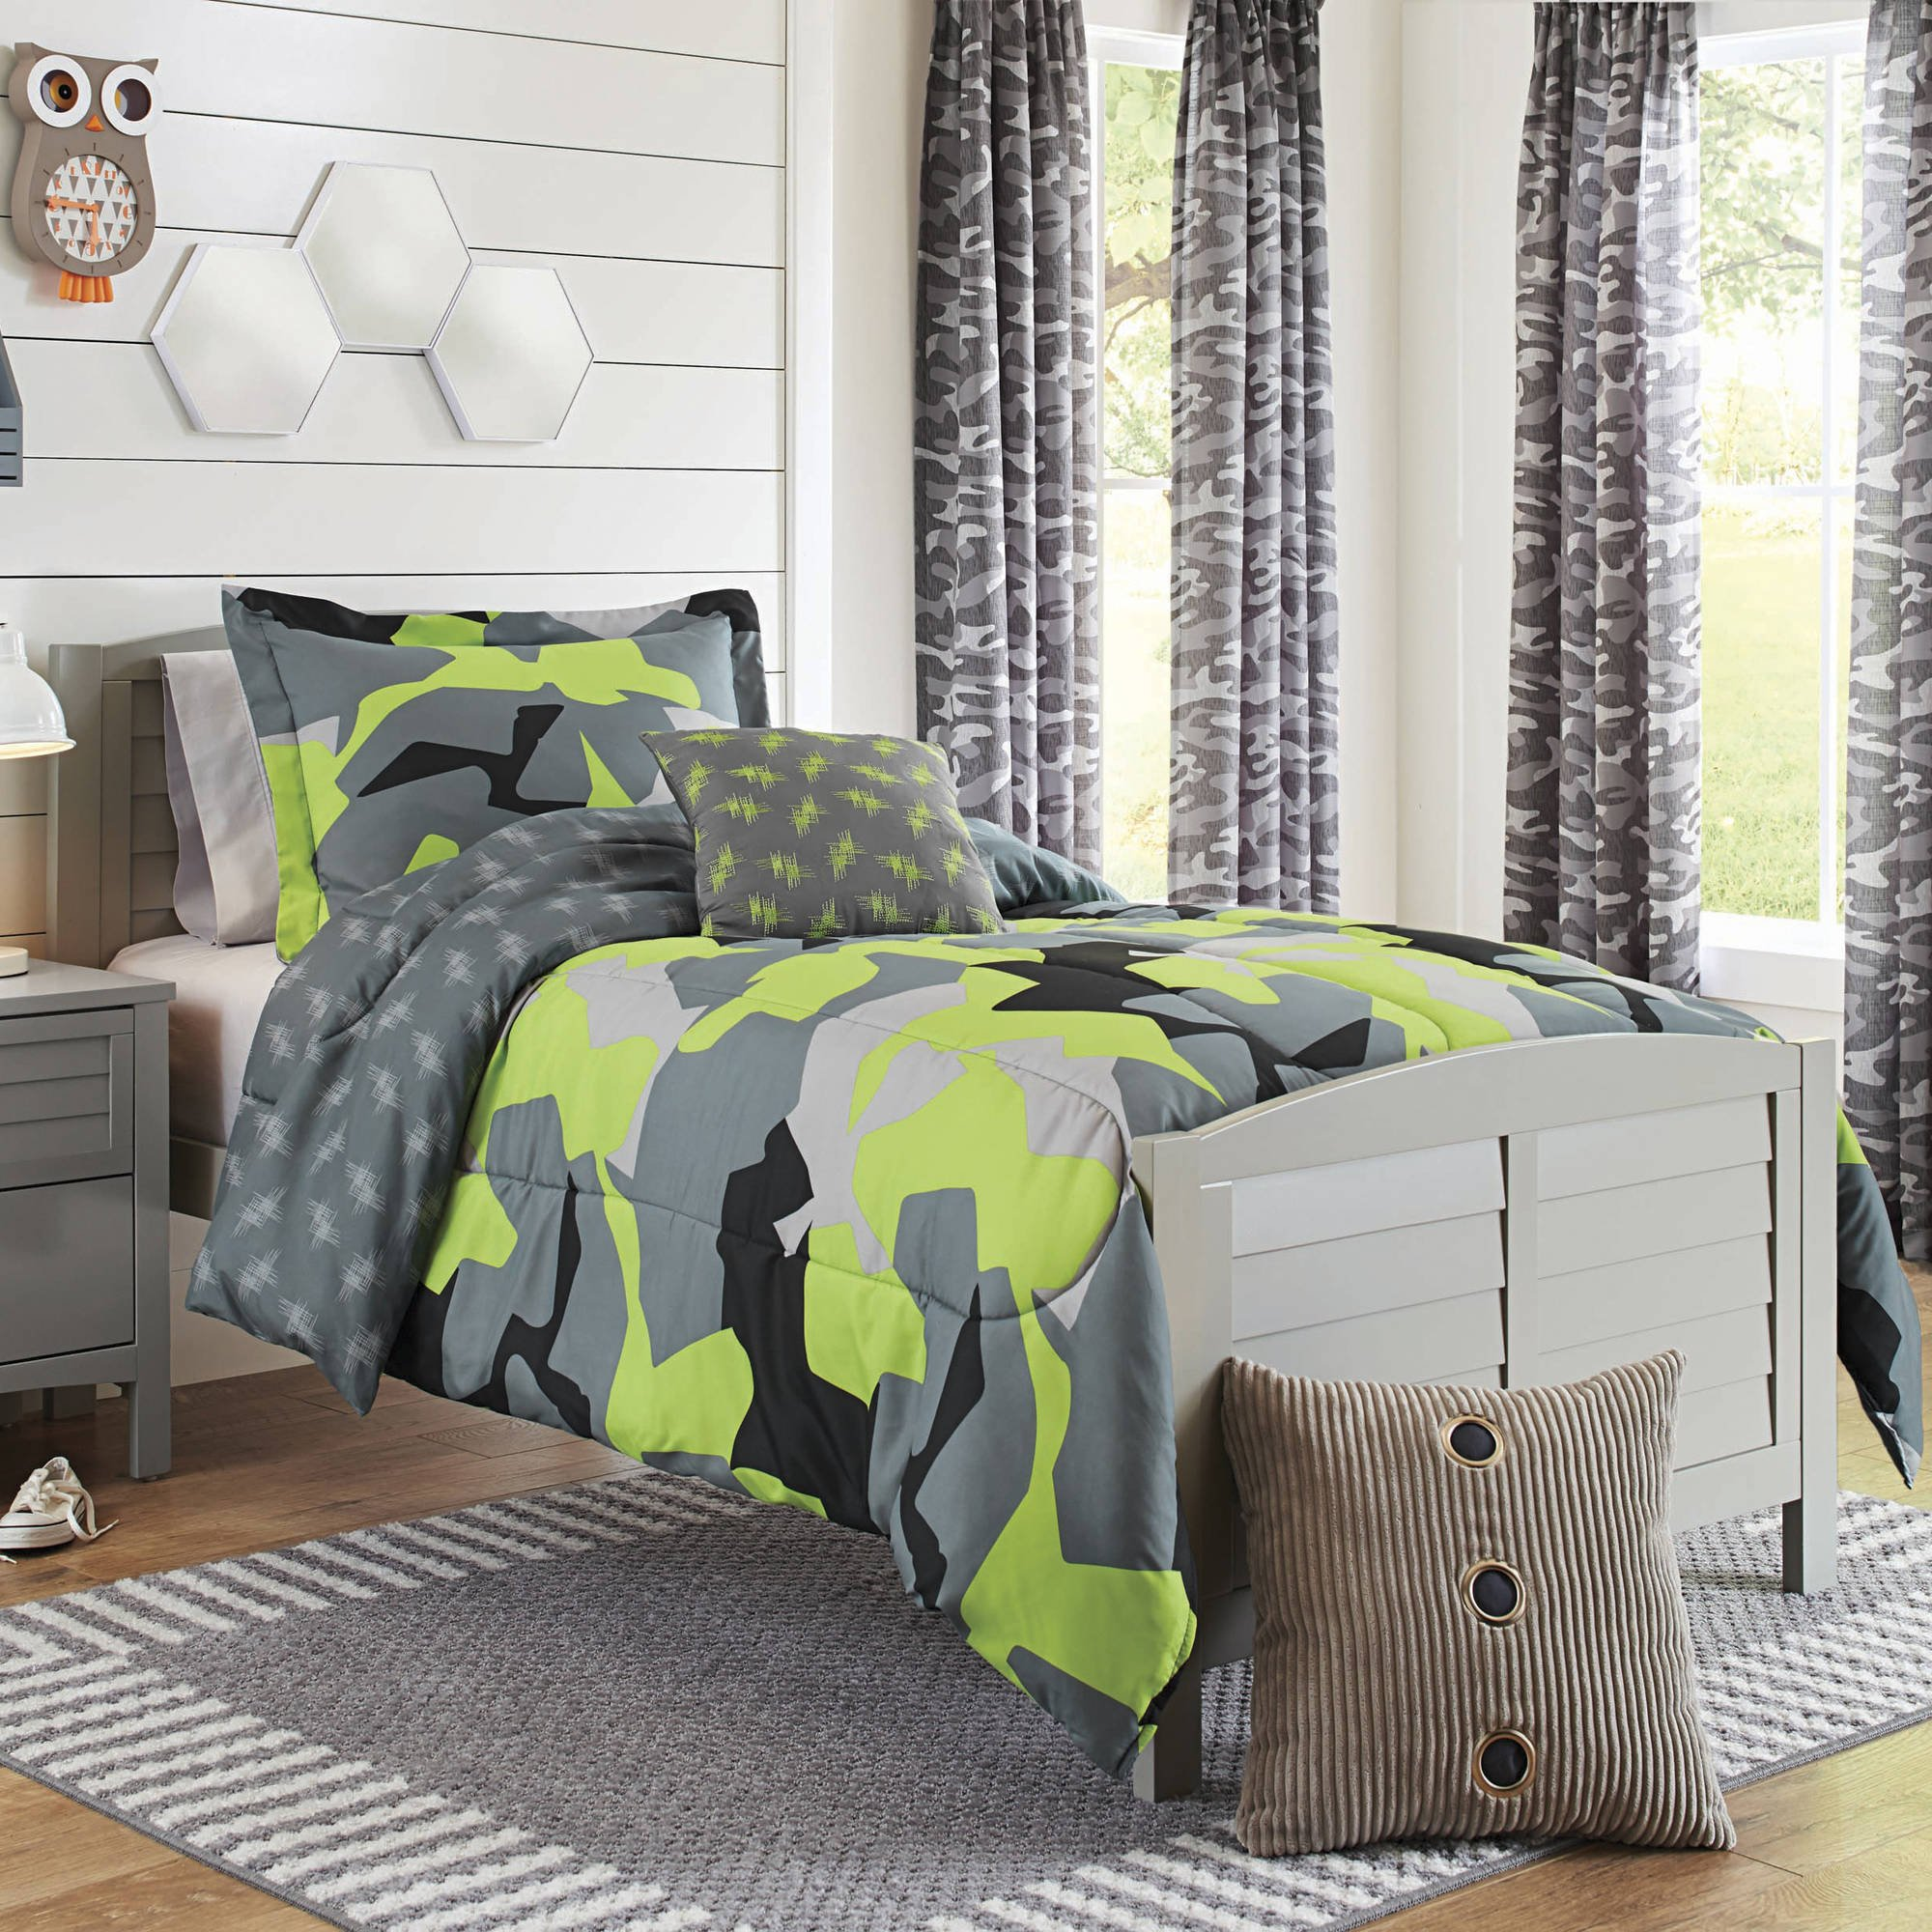 ON 4 Piece Boys Lime Grey Black Camo Comforter Full Queen Set, Multi Camouflage Pattern Army Themed Stylish Green Plaid Design Kids Bedding Teen Bedroom, Reversible Solid Grey Color Trendy, Polyester